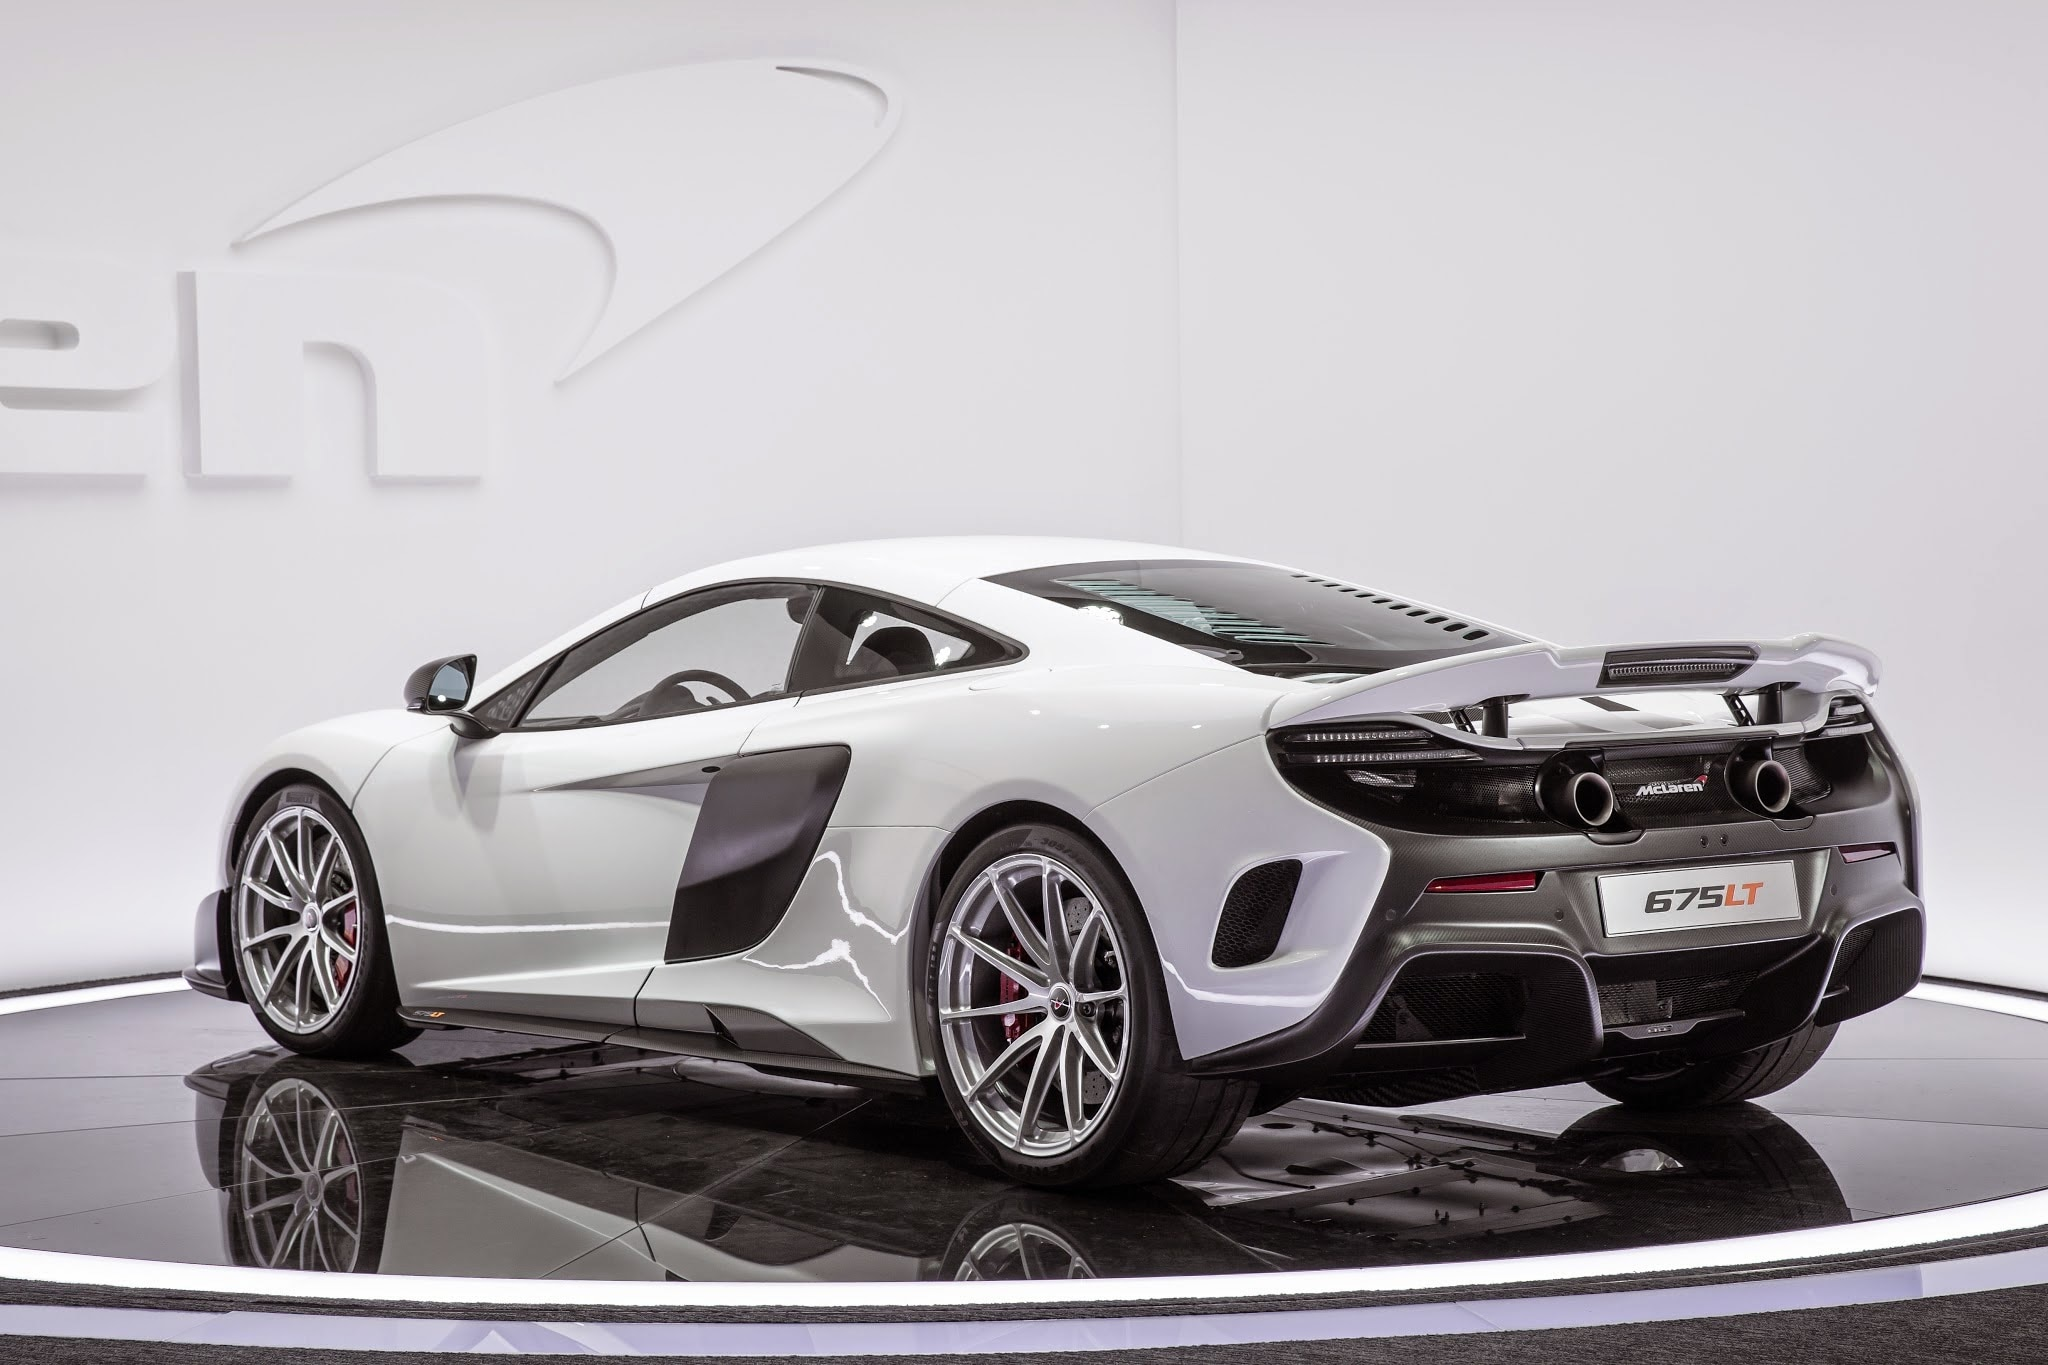 mclaren 675lt production will be limited to 500 units